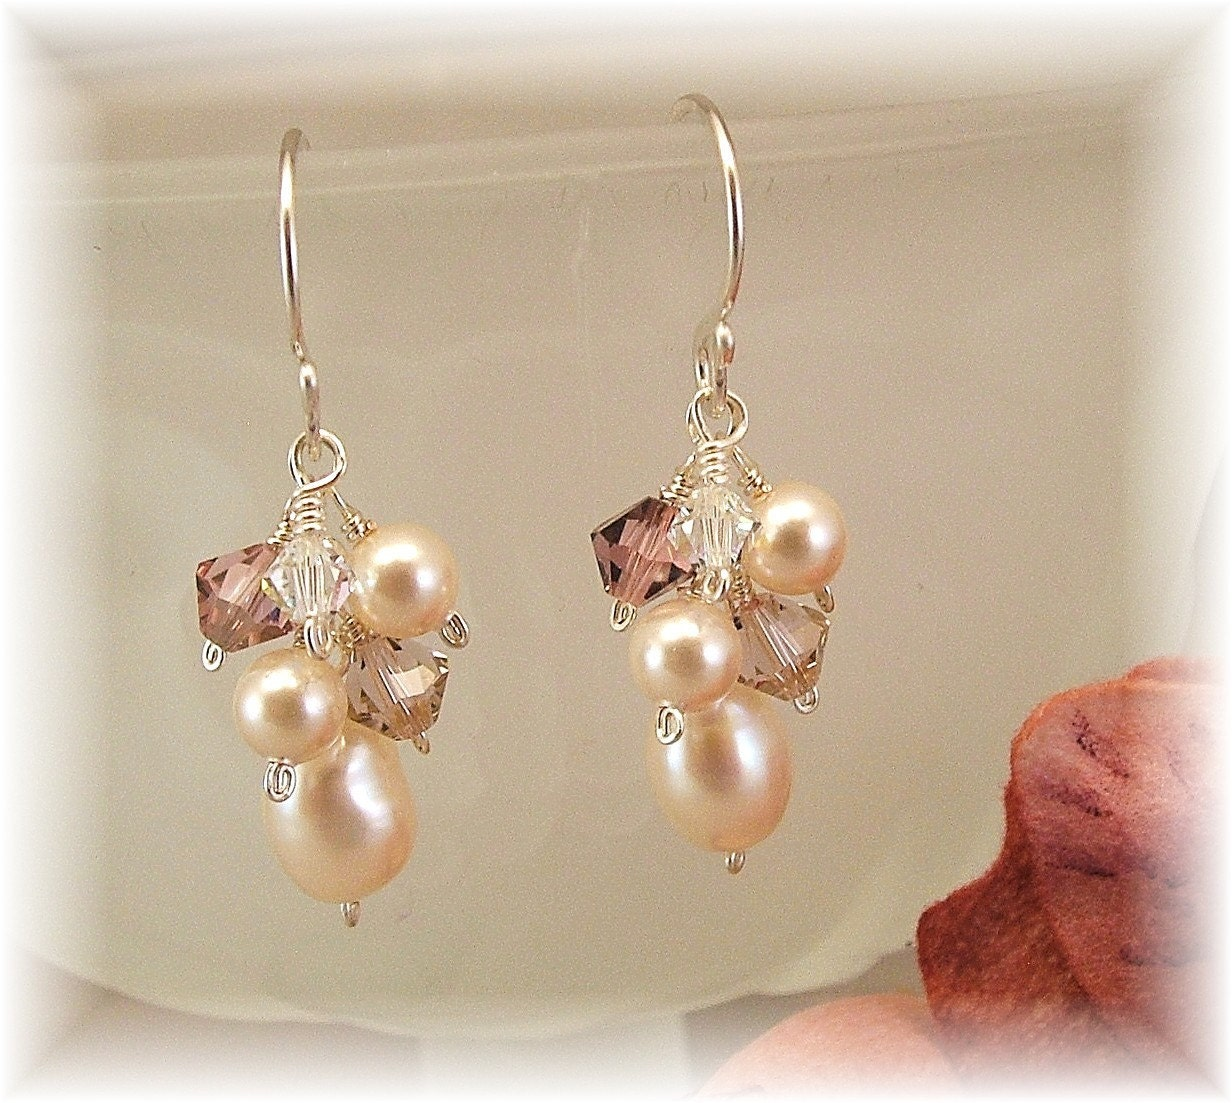 DUSTY ROSE BLEND   SWAROVSKI AUSTRIAN CRYSTAL AND by www.handwired.etsy.com from etsy.com